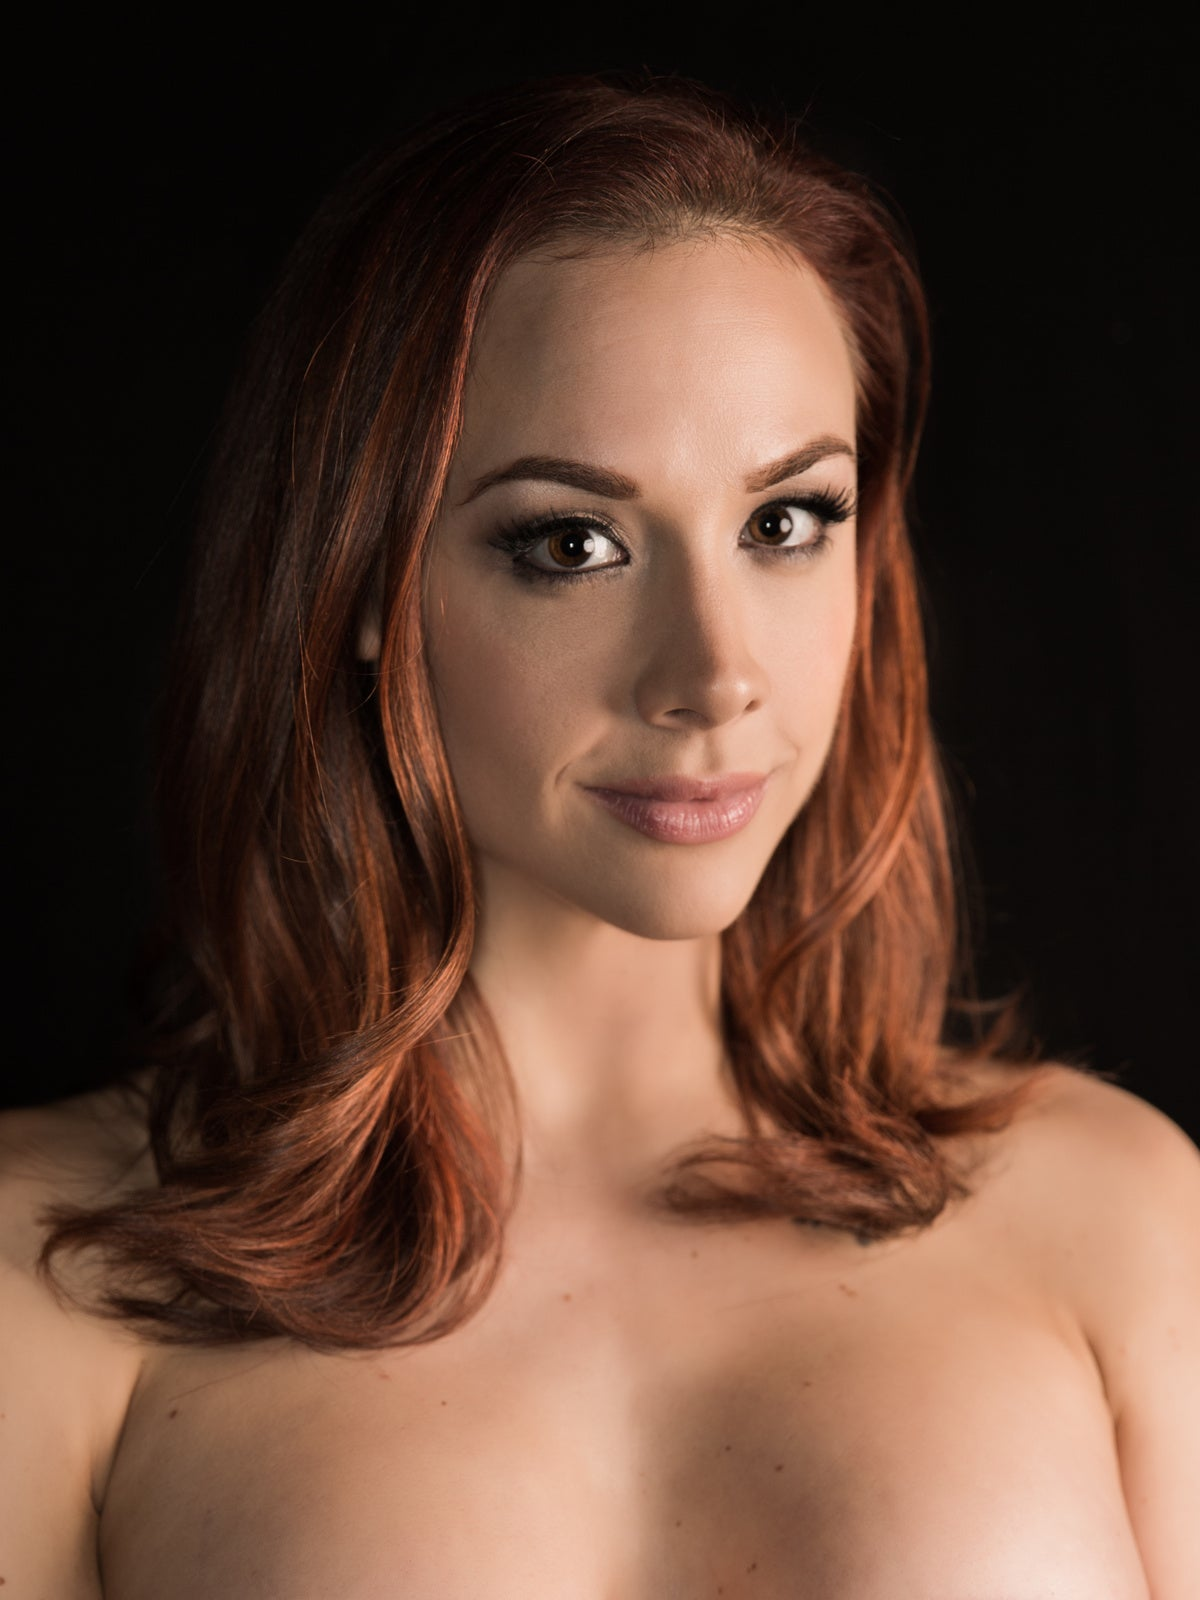 Anormal Porn conversations with porn stars: my life after leaving the